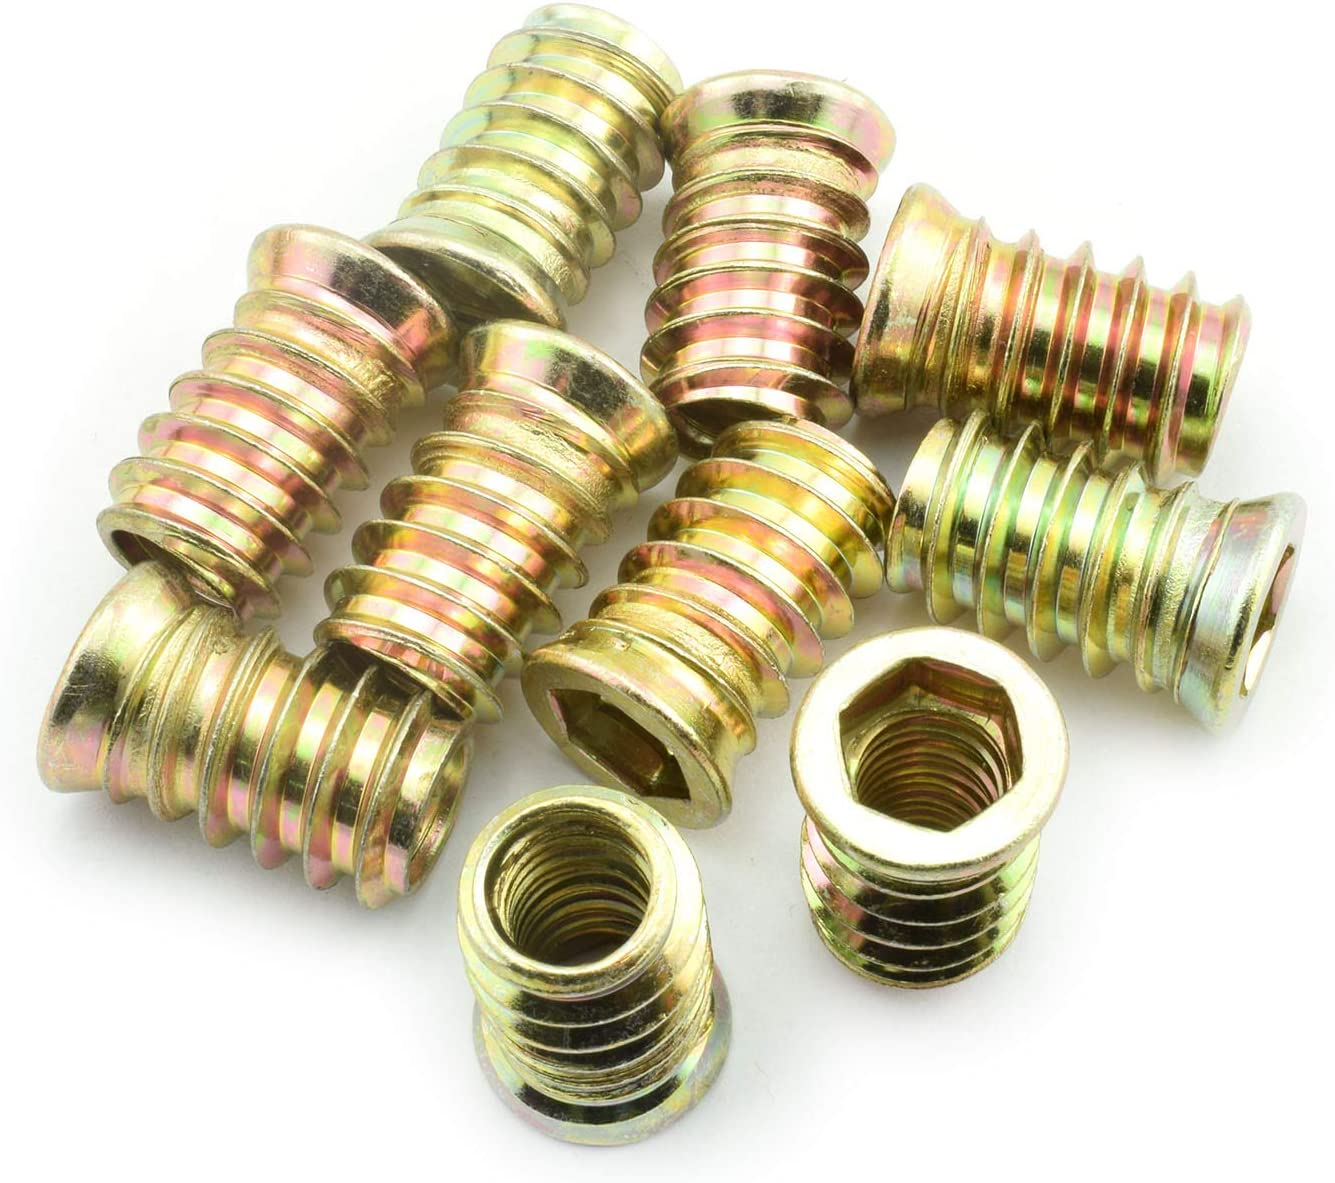 """LQ Industrial 30pcs 25mm Furniture Screw-in Nut Carbon Steel Color Zinc Plated Bolt Fastener Connector Hex Socket Drive Threaded Insert Nuts for Wood Furniture Assortment 3/8""""-16"""